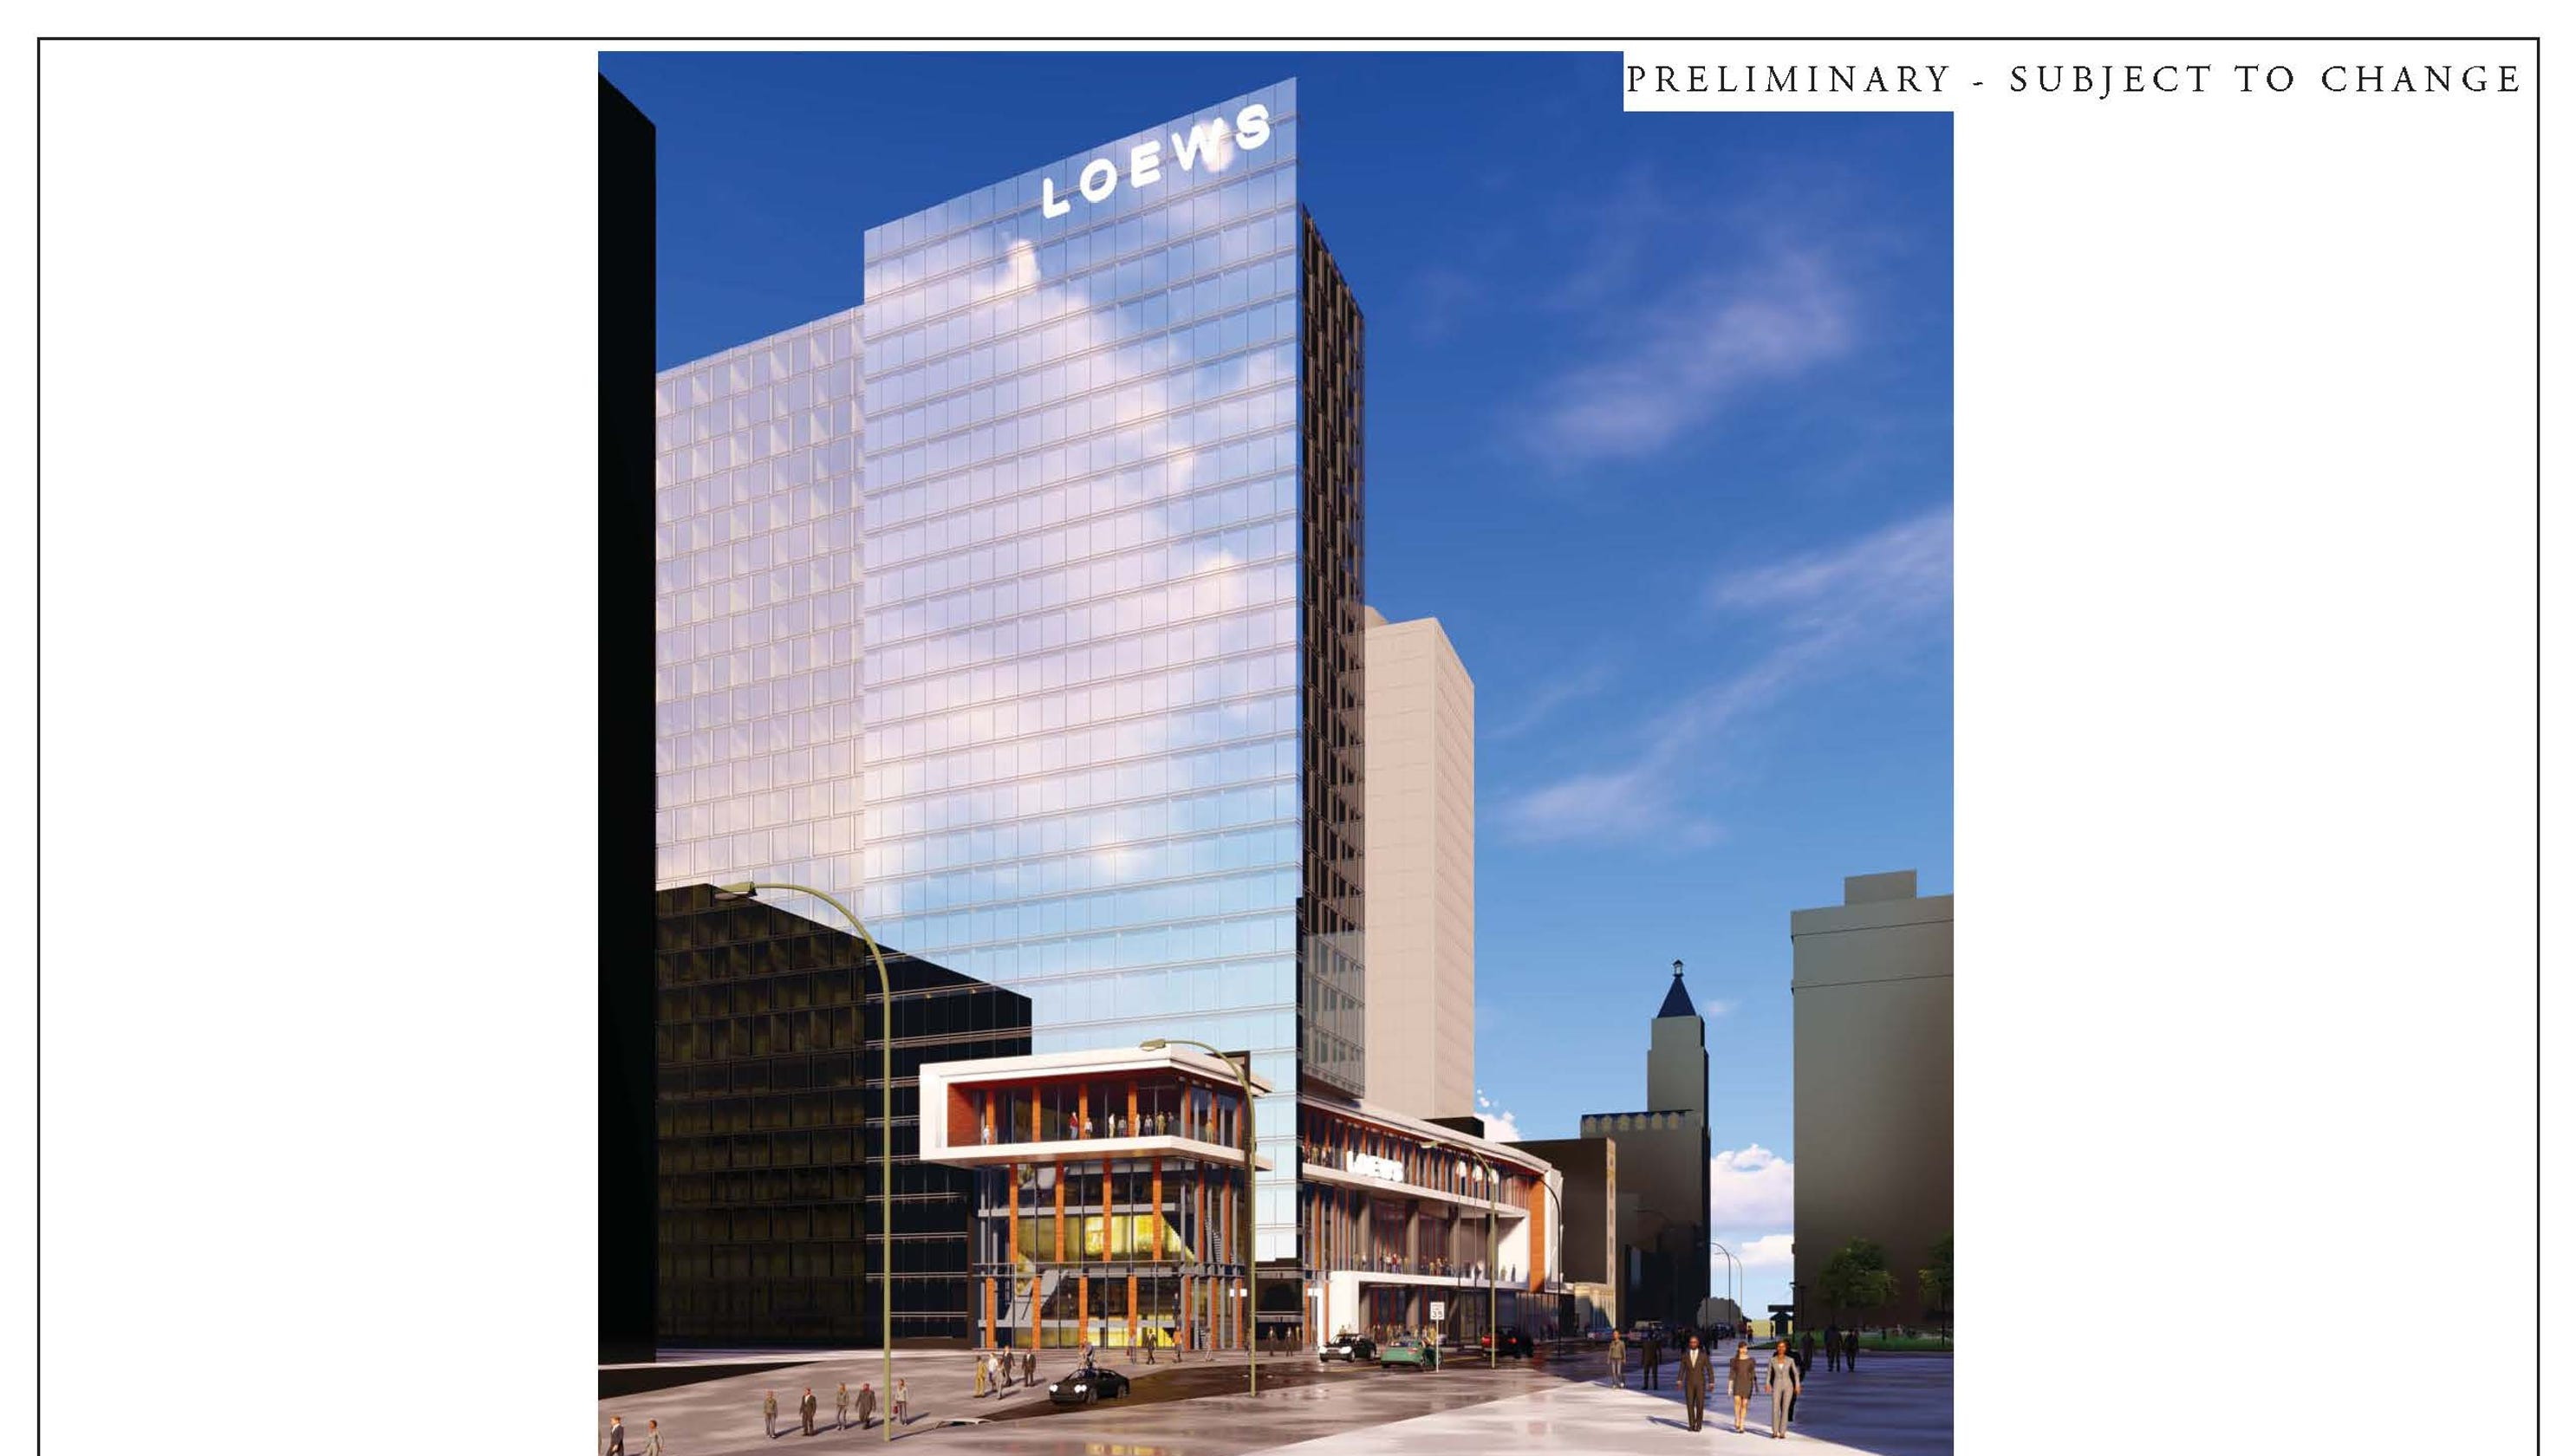 memphis new loews convention hotel would look sleek and modern